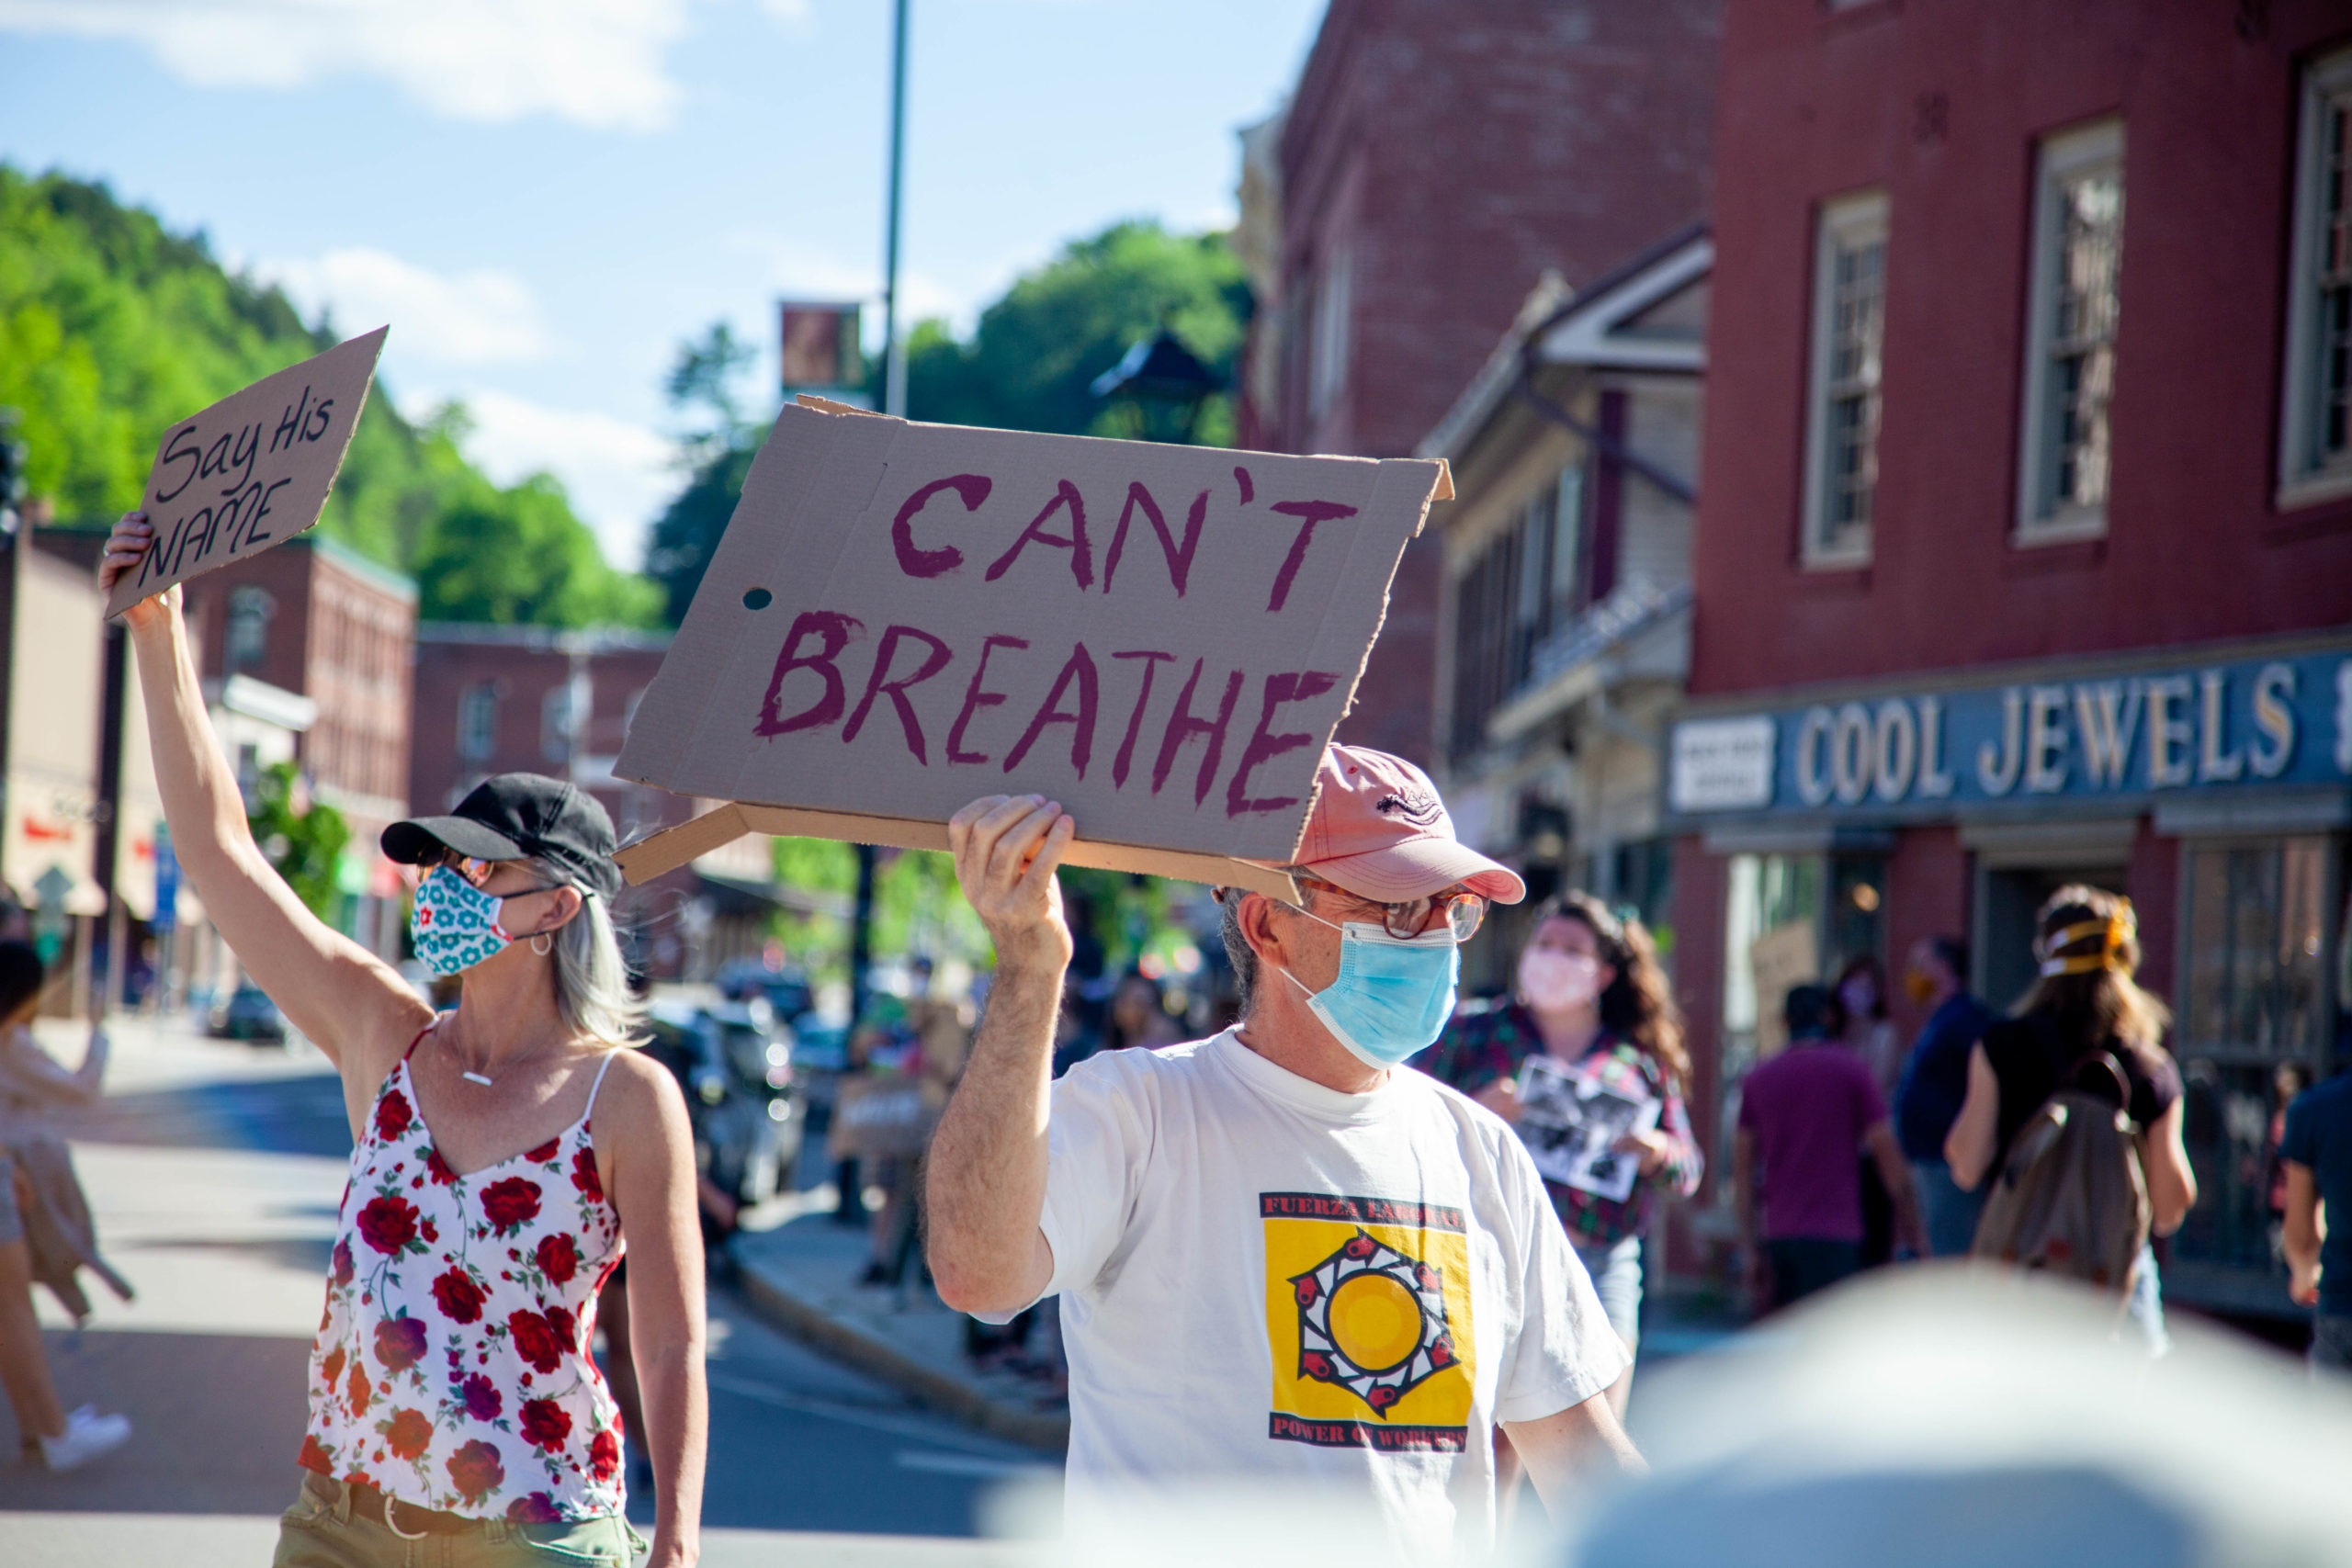 Can't breathe sign